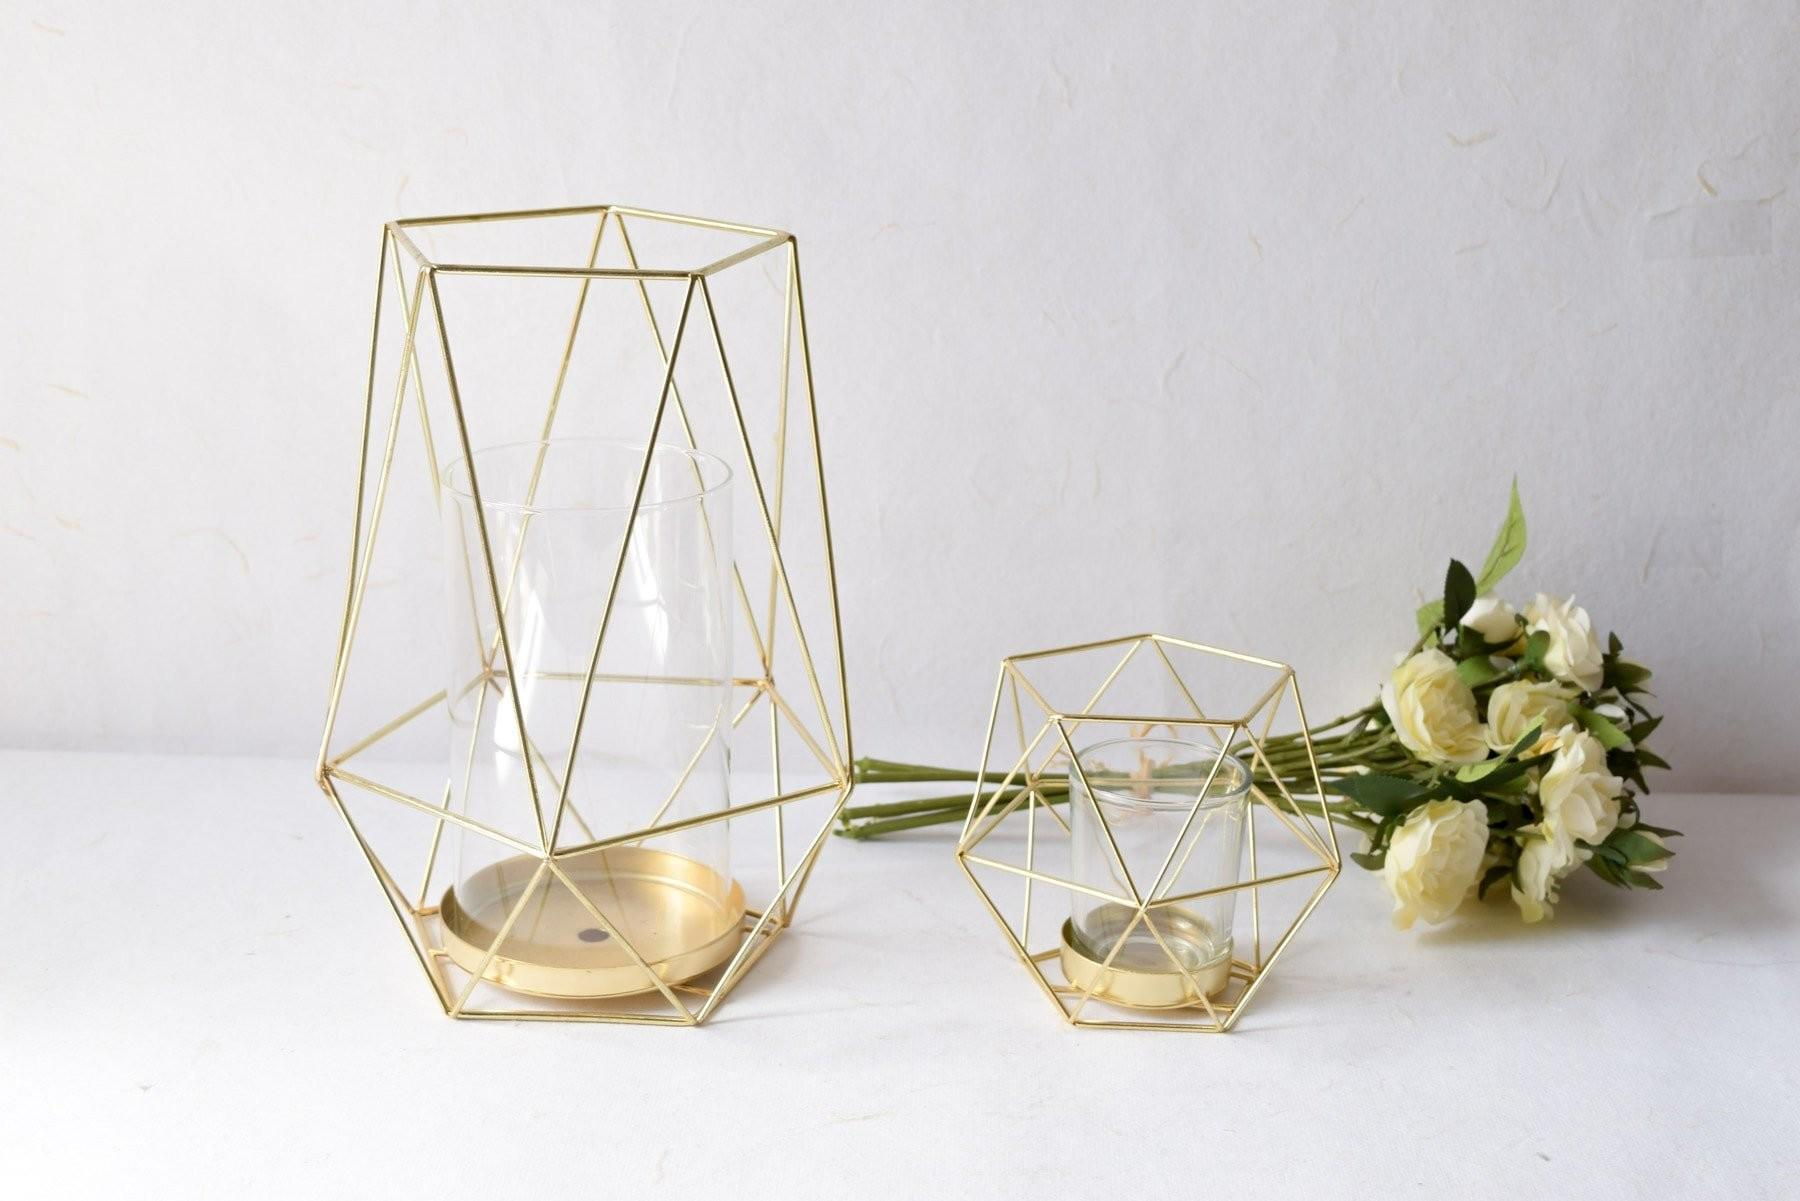 Buy Geometric Gold Candle Holder Small Home Artisan